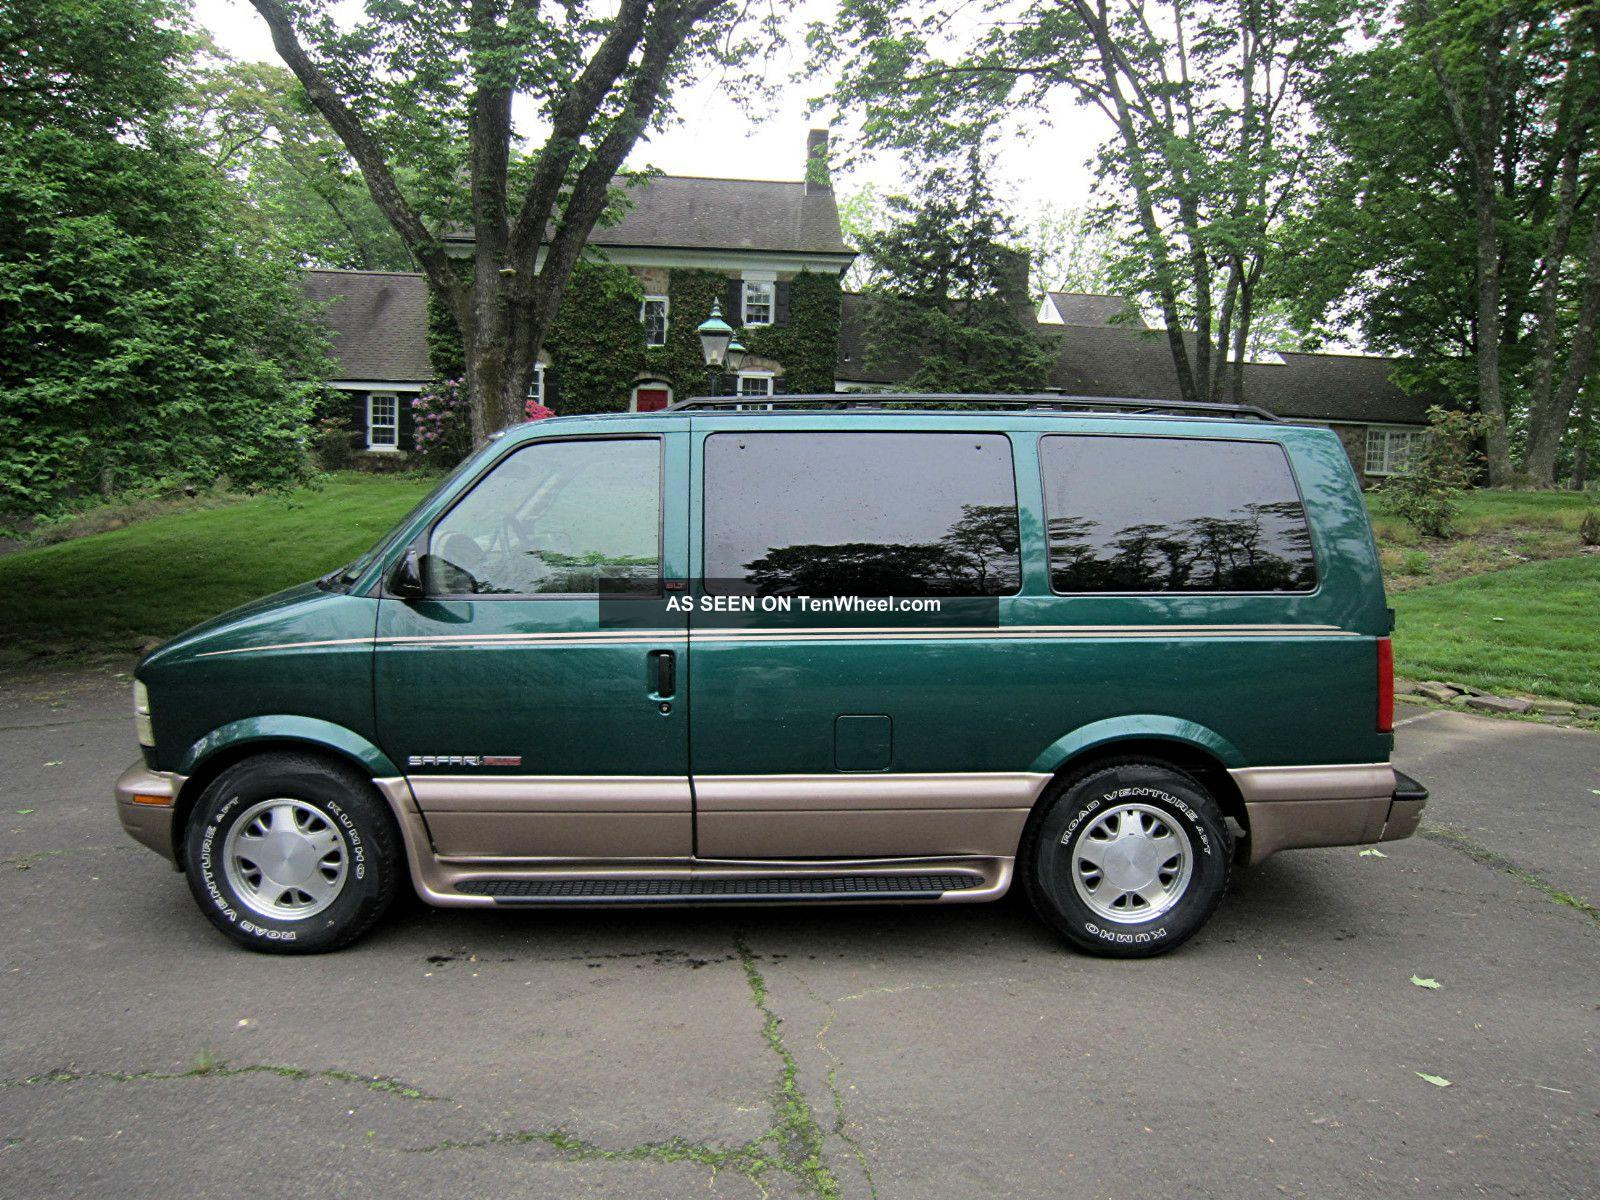 800 1024 1280 1600 origin 2002 gmc safari